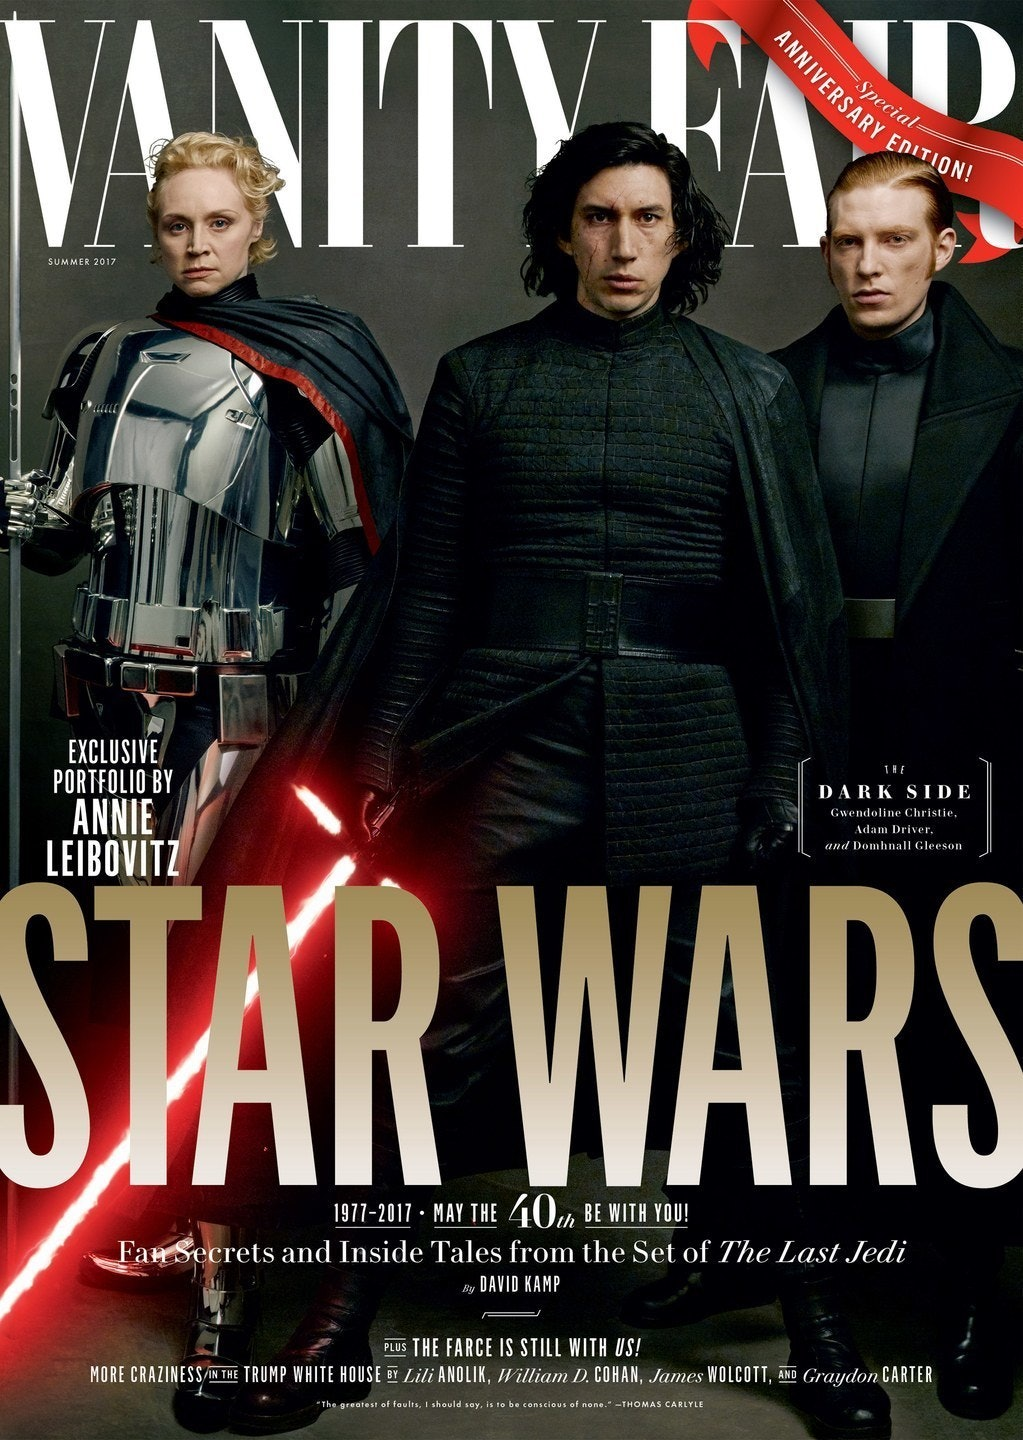 Captain Phasma (Gwendoline Christie), Kylo Ren (Adam Driver), and General Hux (Domhnall Gleeson) are all leaders in the First Order.